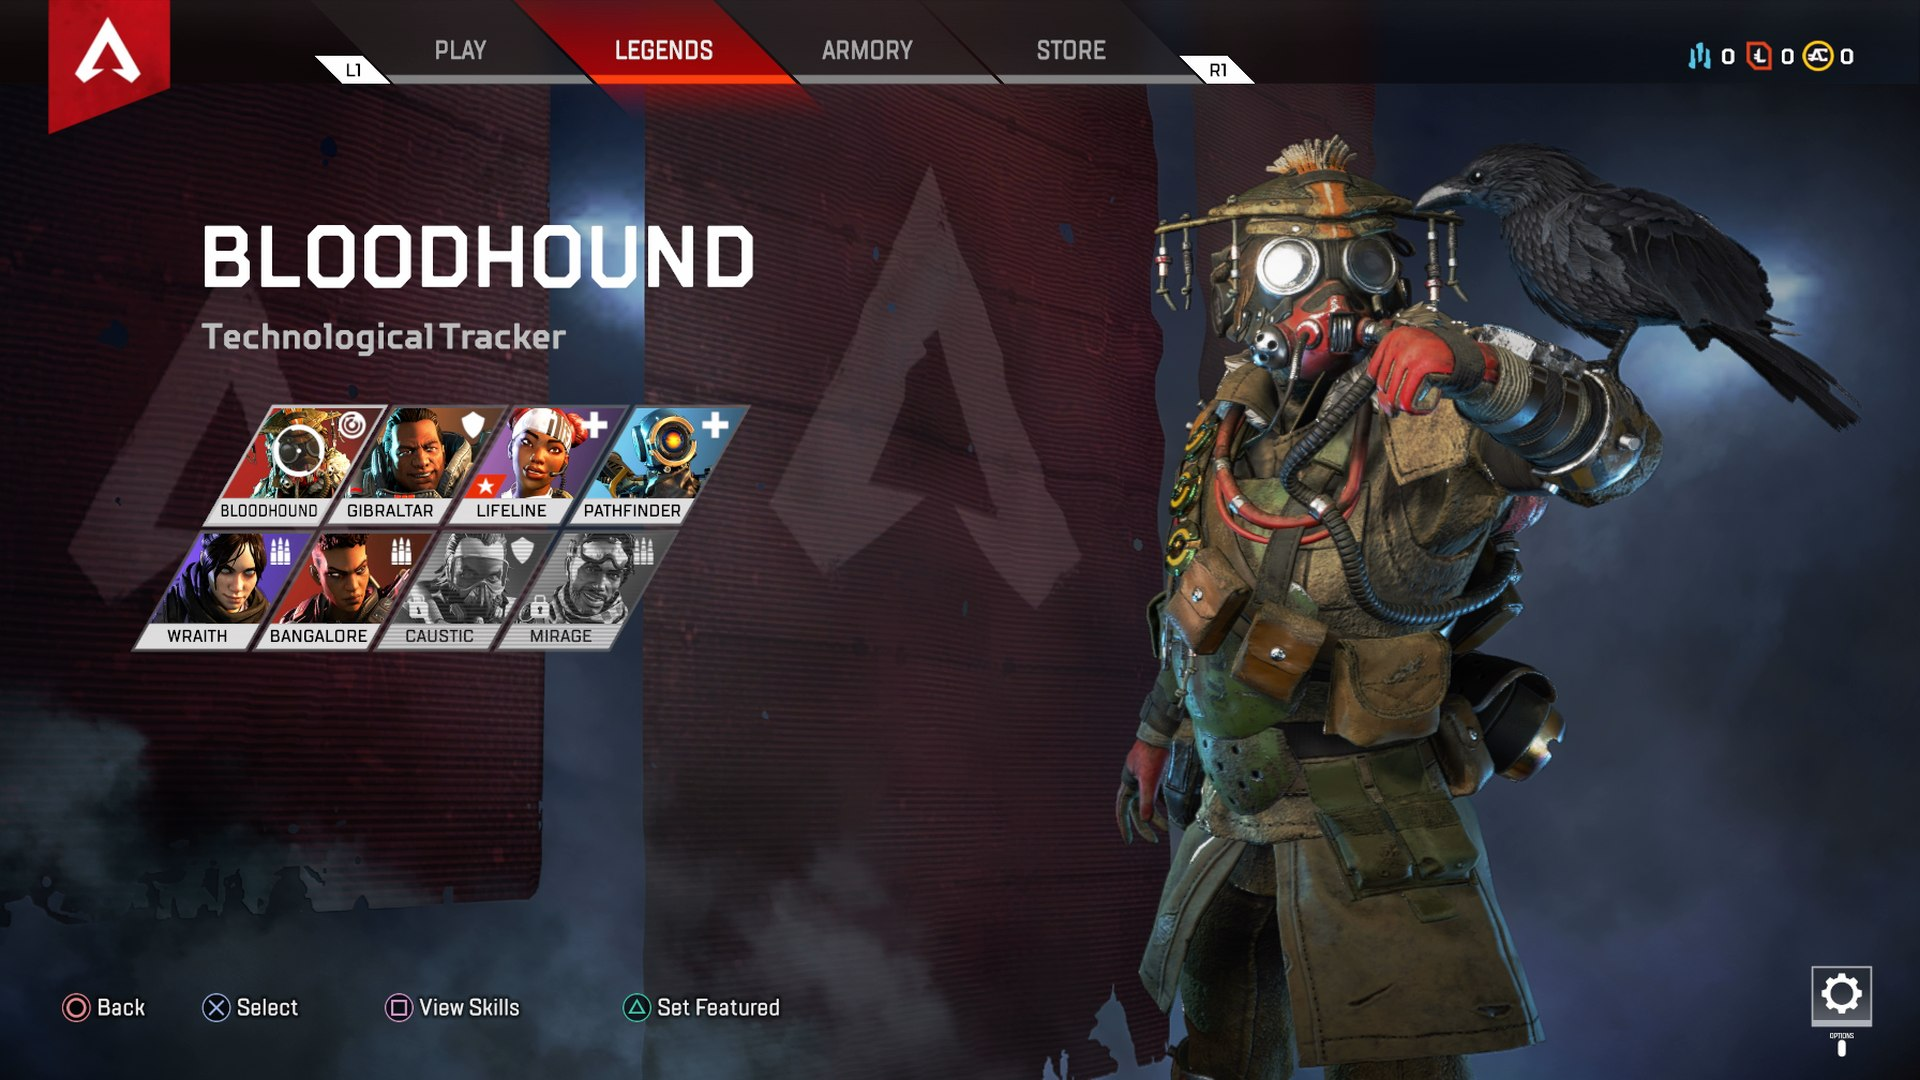 Complete Apex Legends Characters List, Including All Abilities | USgamer